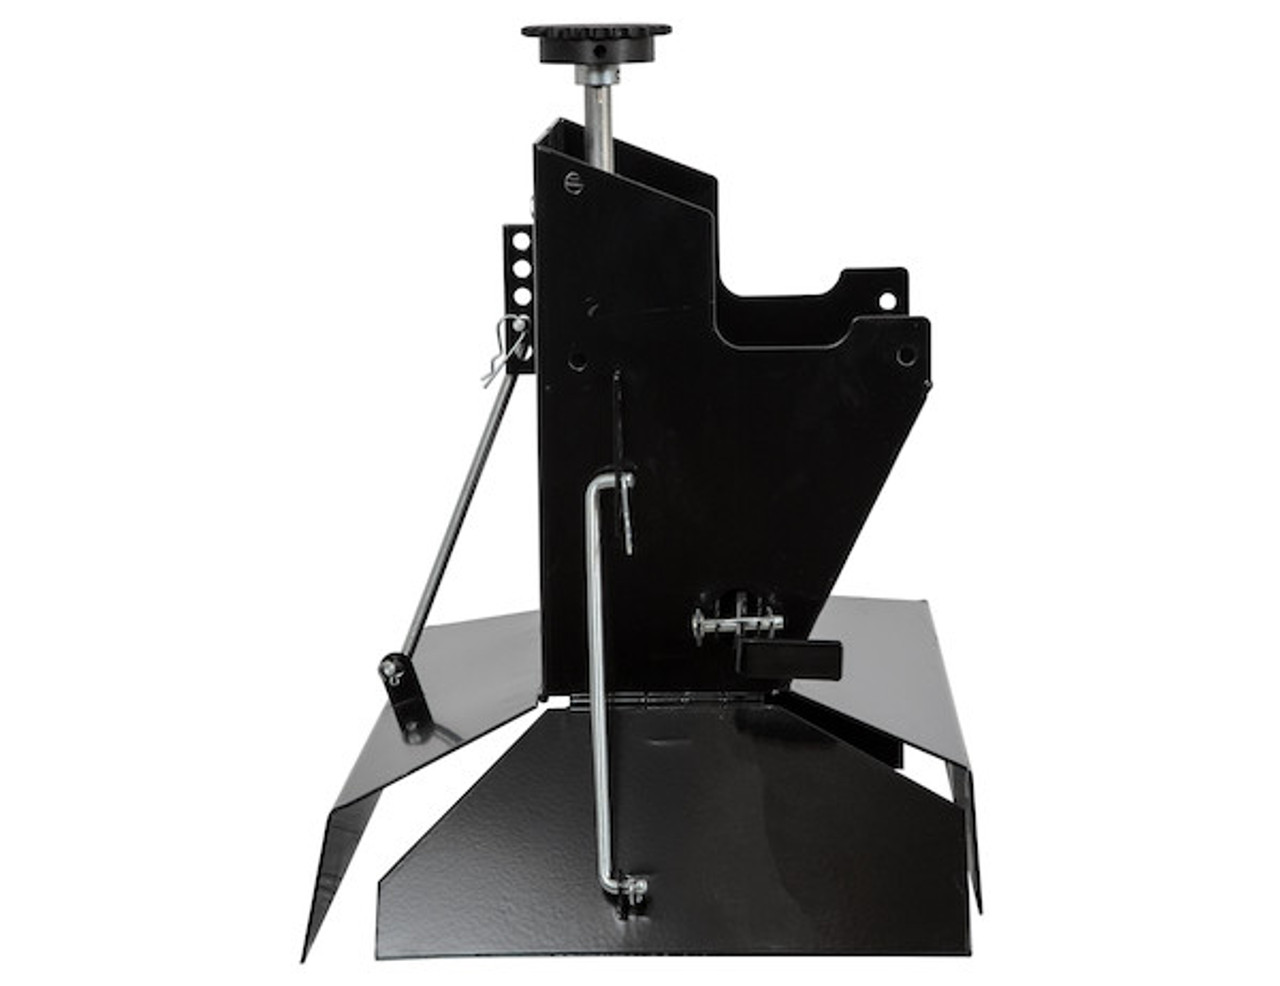 BUYERS 142005A Replacement Standard Carbon Chute For SaltDogg 1400400 And 1400450 Spreaders 5